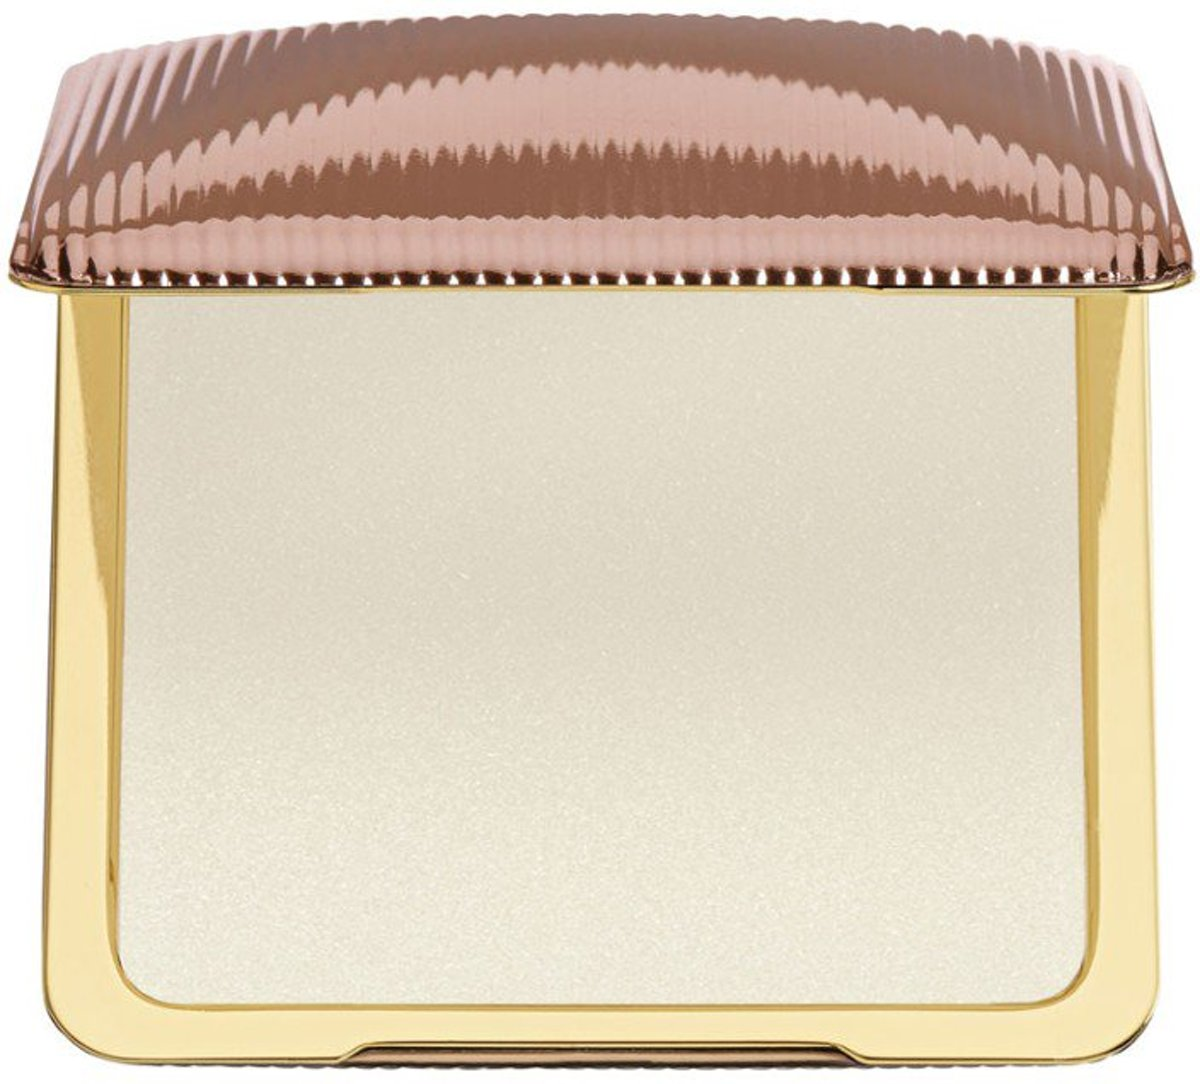 TOM FORD Orchid Soleil Solid Perfume compact - solid parfum hard parfum 6.26g